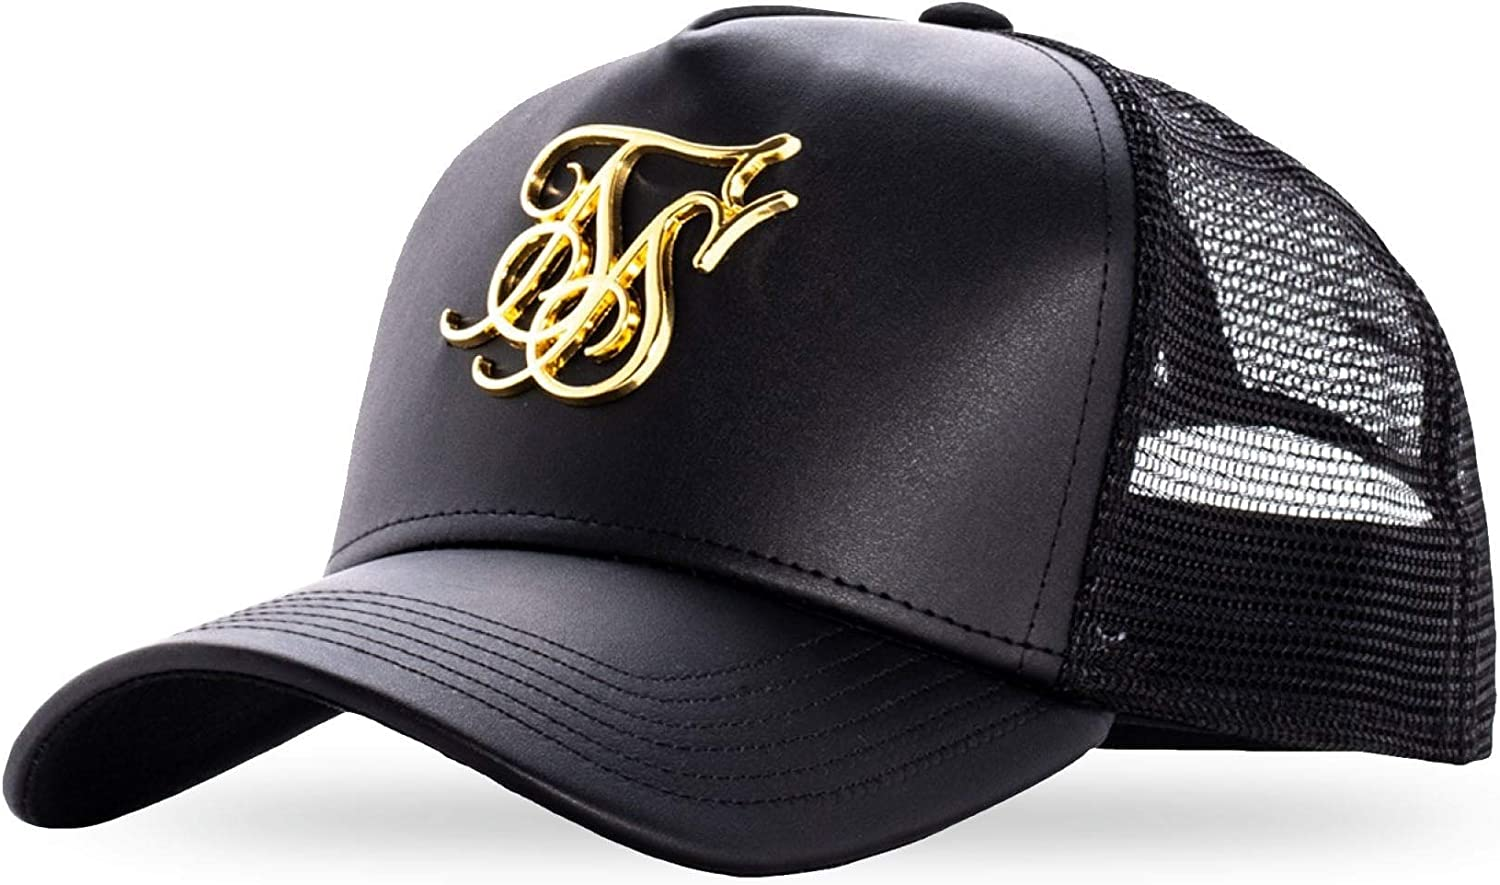 Sik Silk SS-15265 Bent Peak 3D Gold Logo Cap - Black Black: Amazon ...